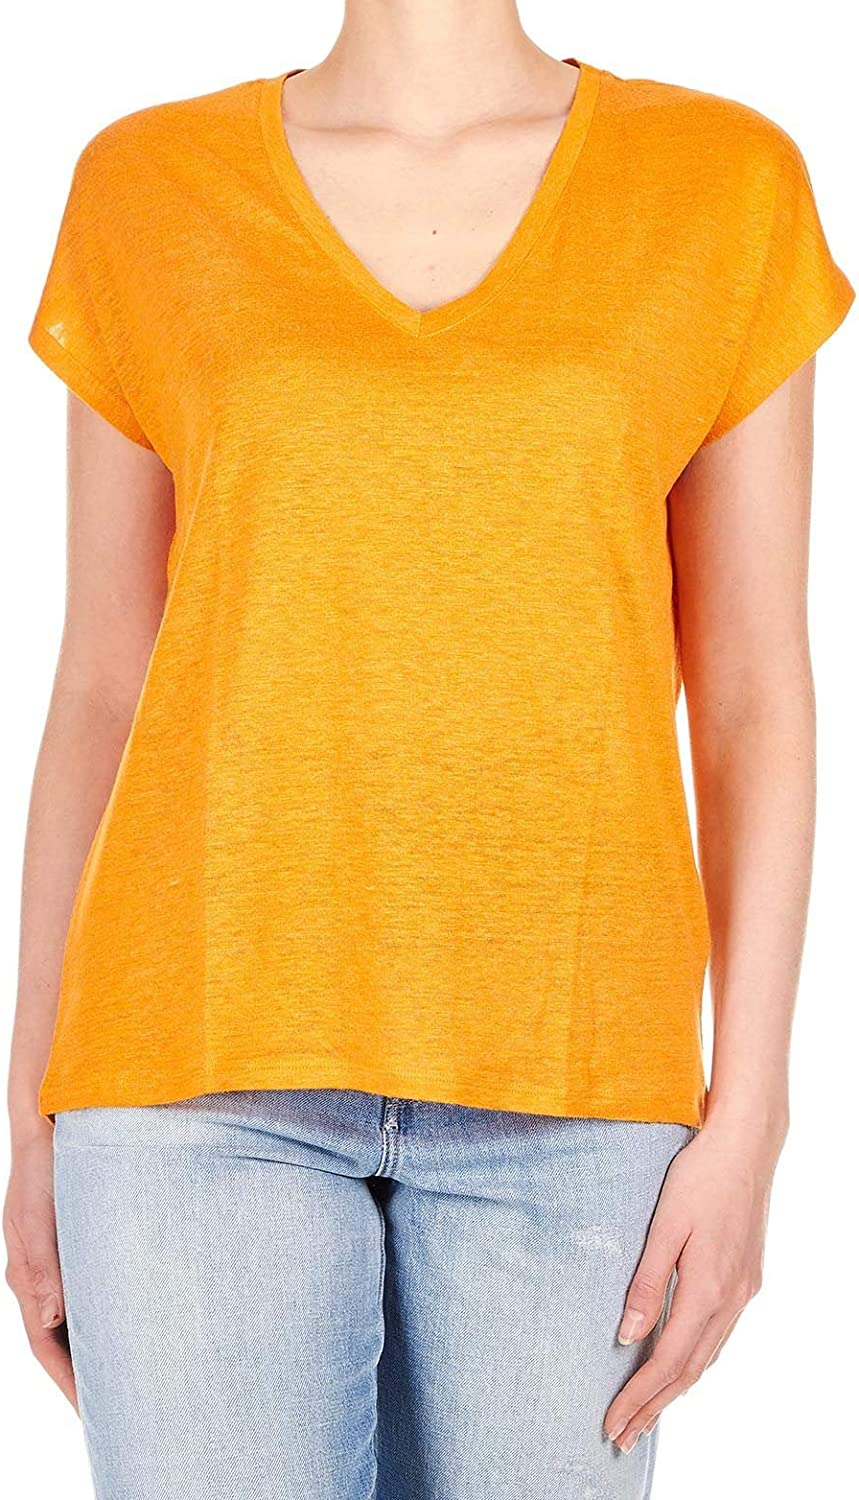 Majestic Filatures Women's J010FTS159 orange Linen TShirt